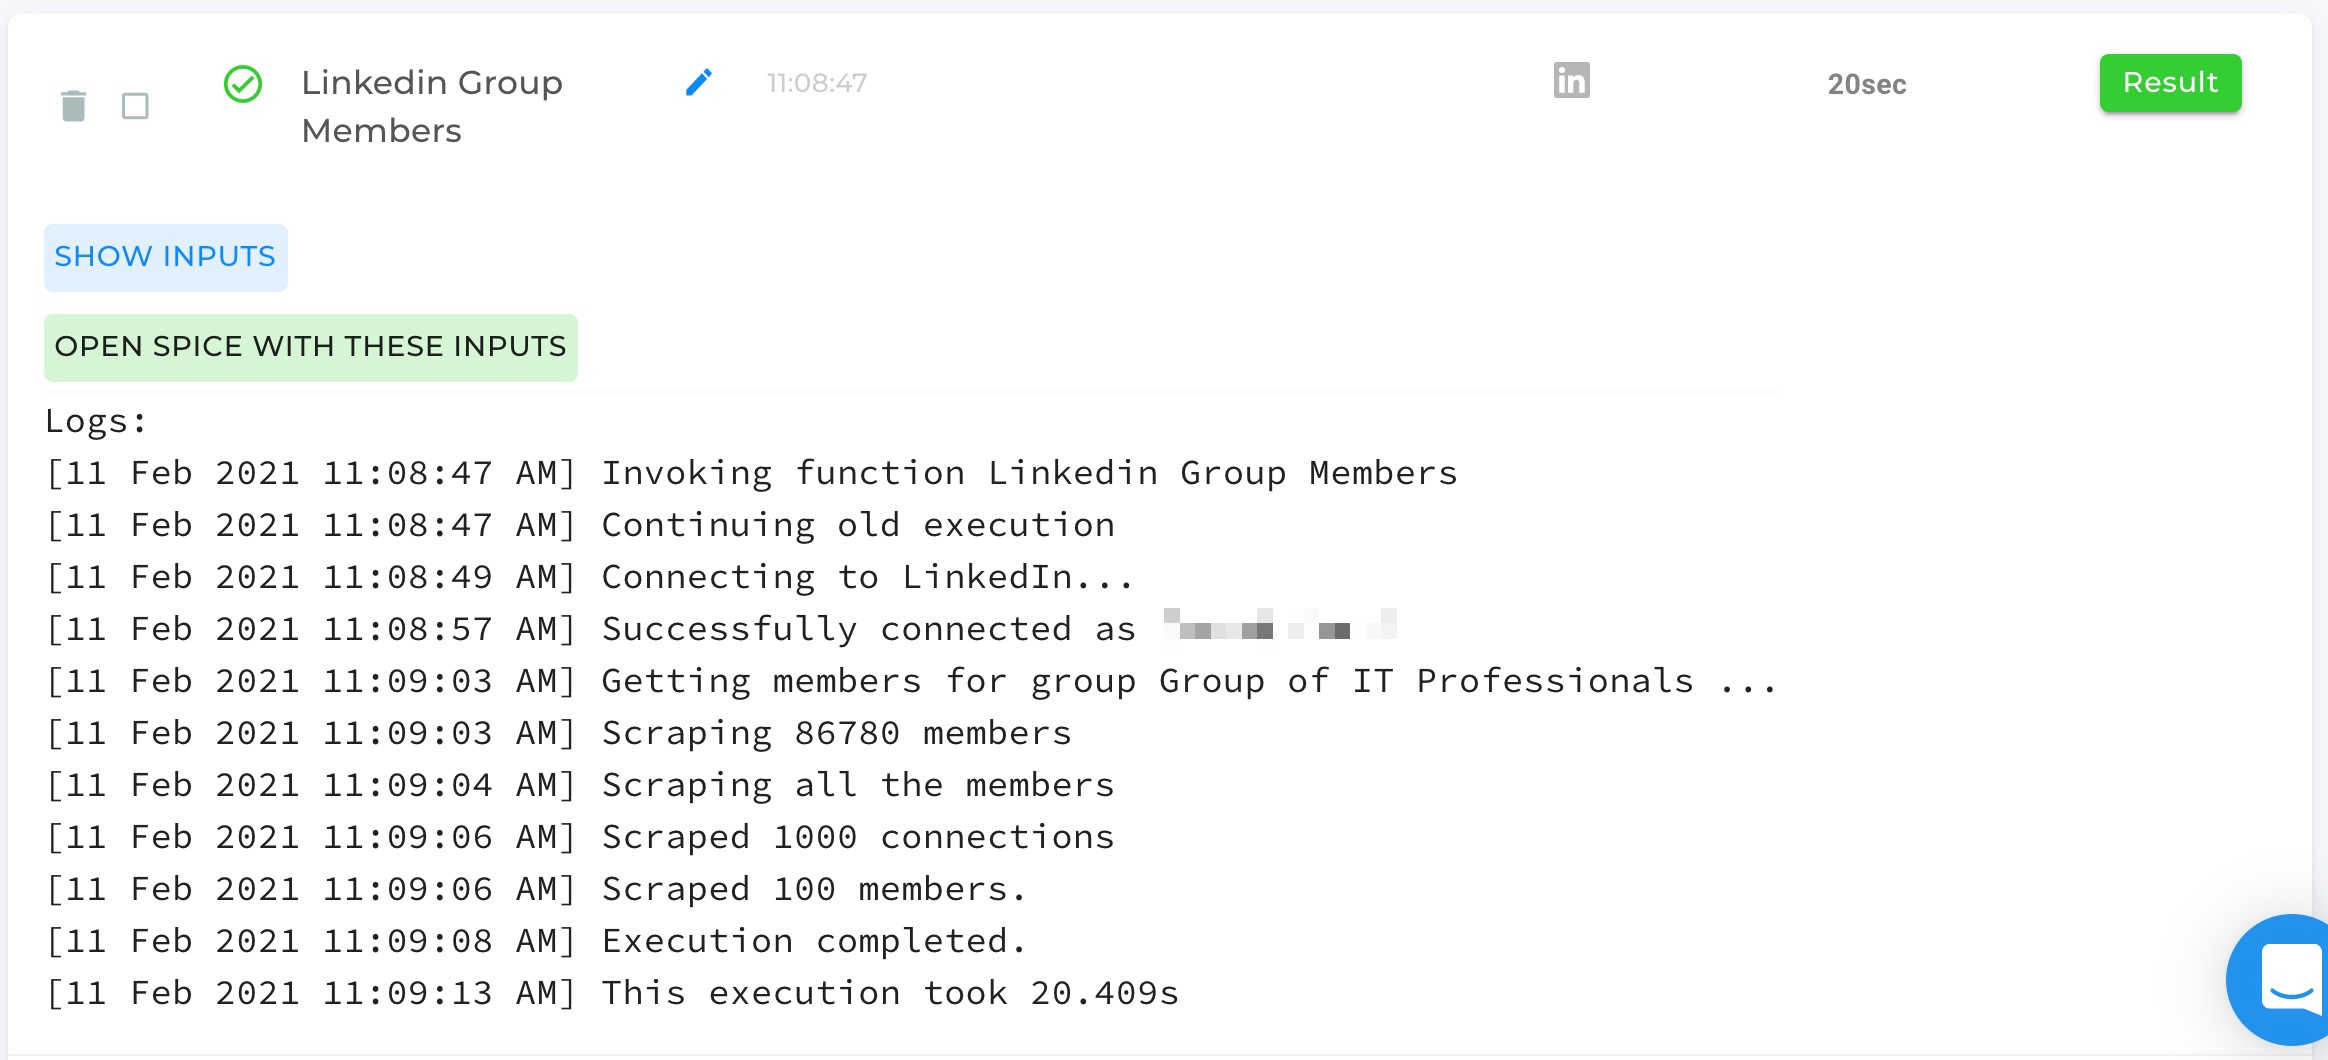 LinkedIn Group Members Automation Completed